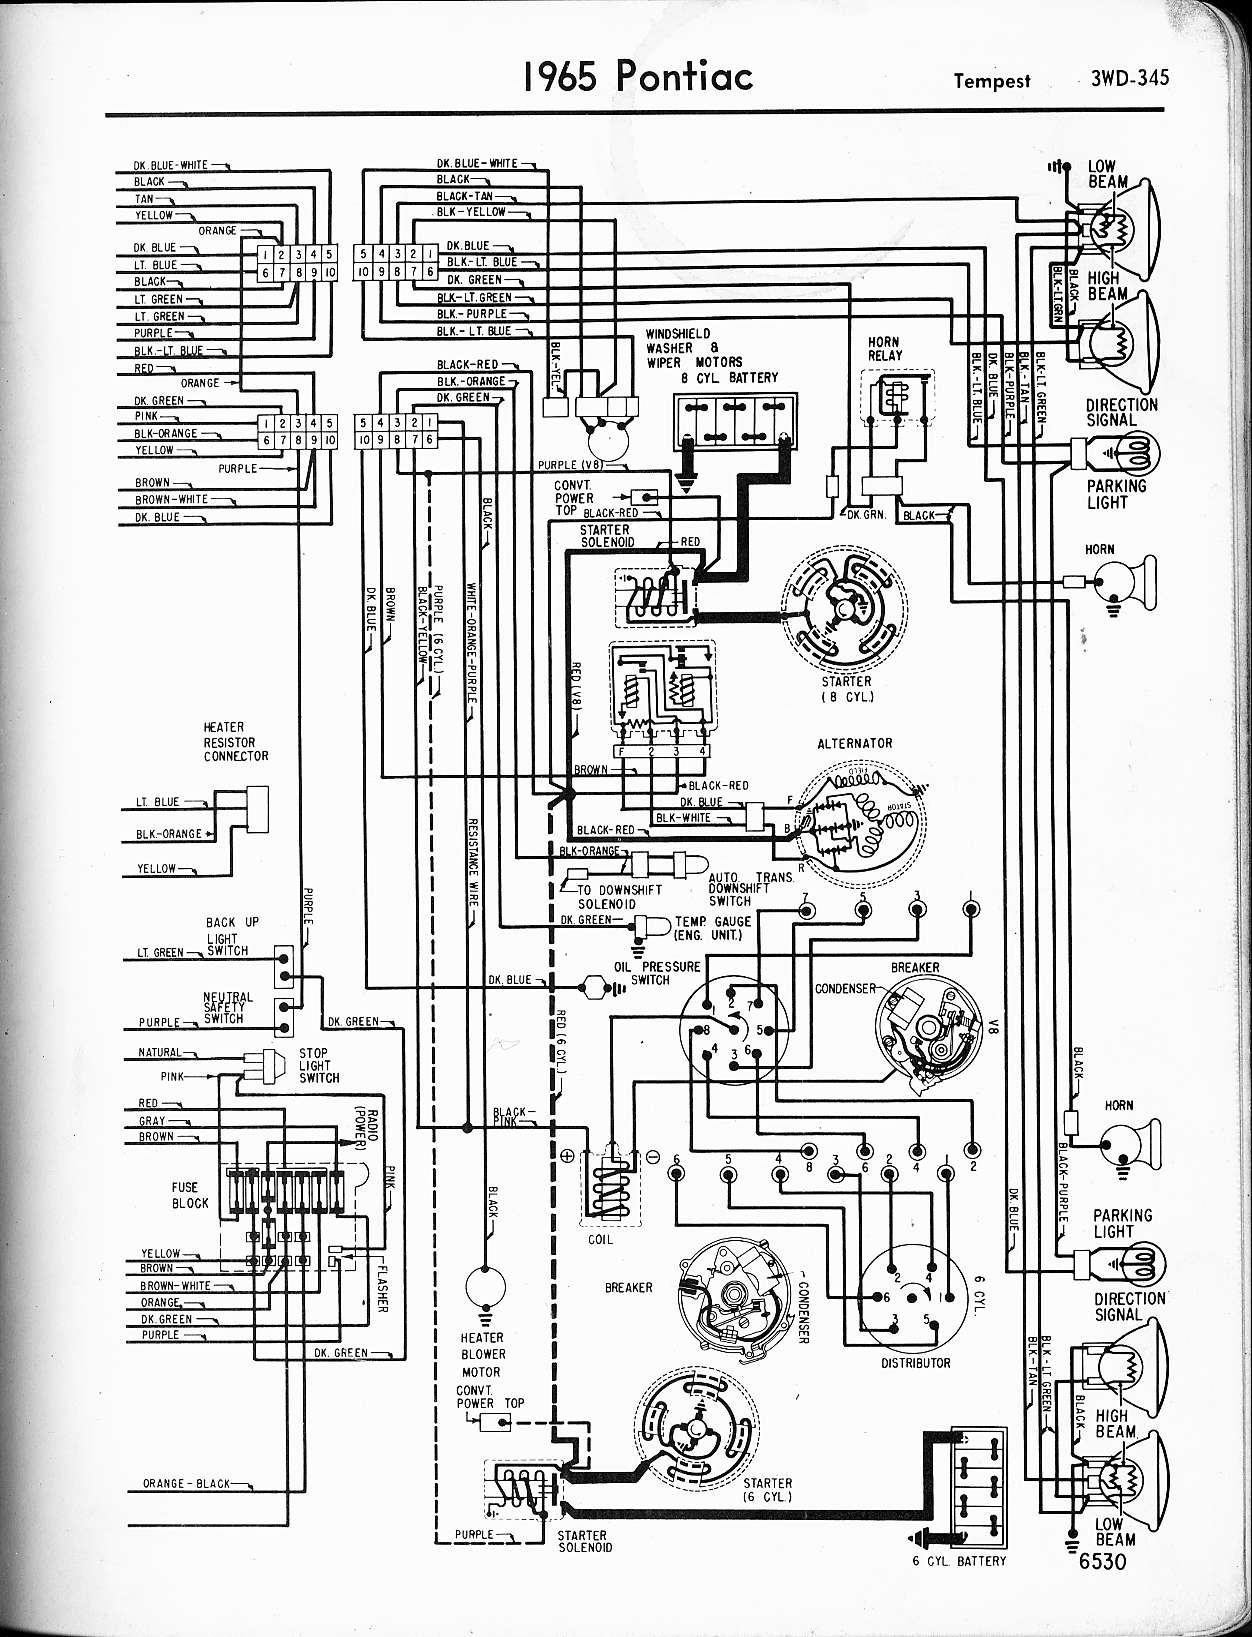 1970 Gto Wiring Diagram | Wiring Diagram Ac Wiring Diagram Corvette on